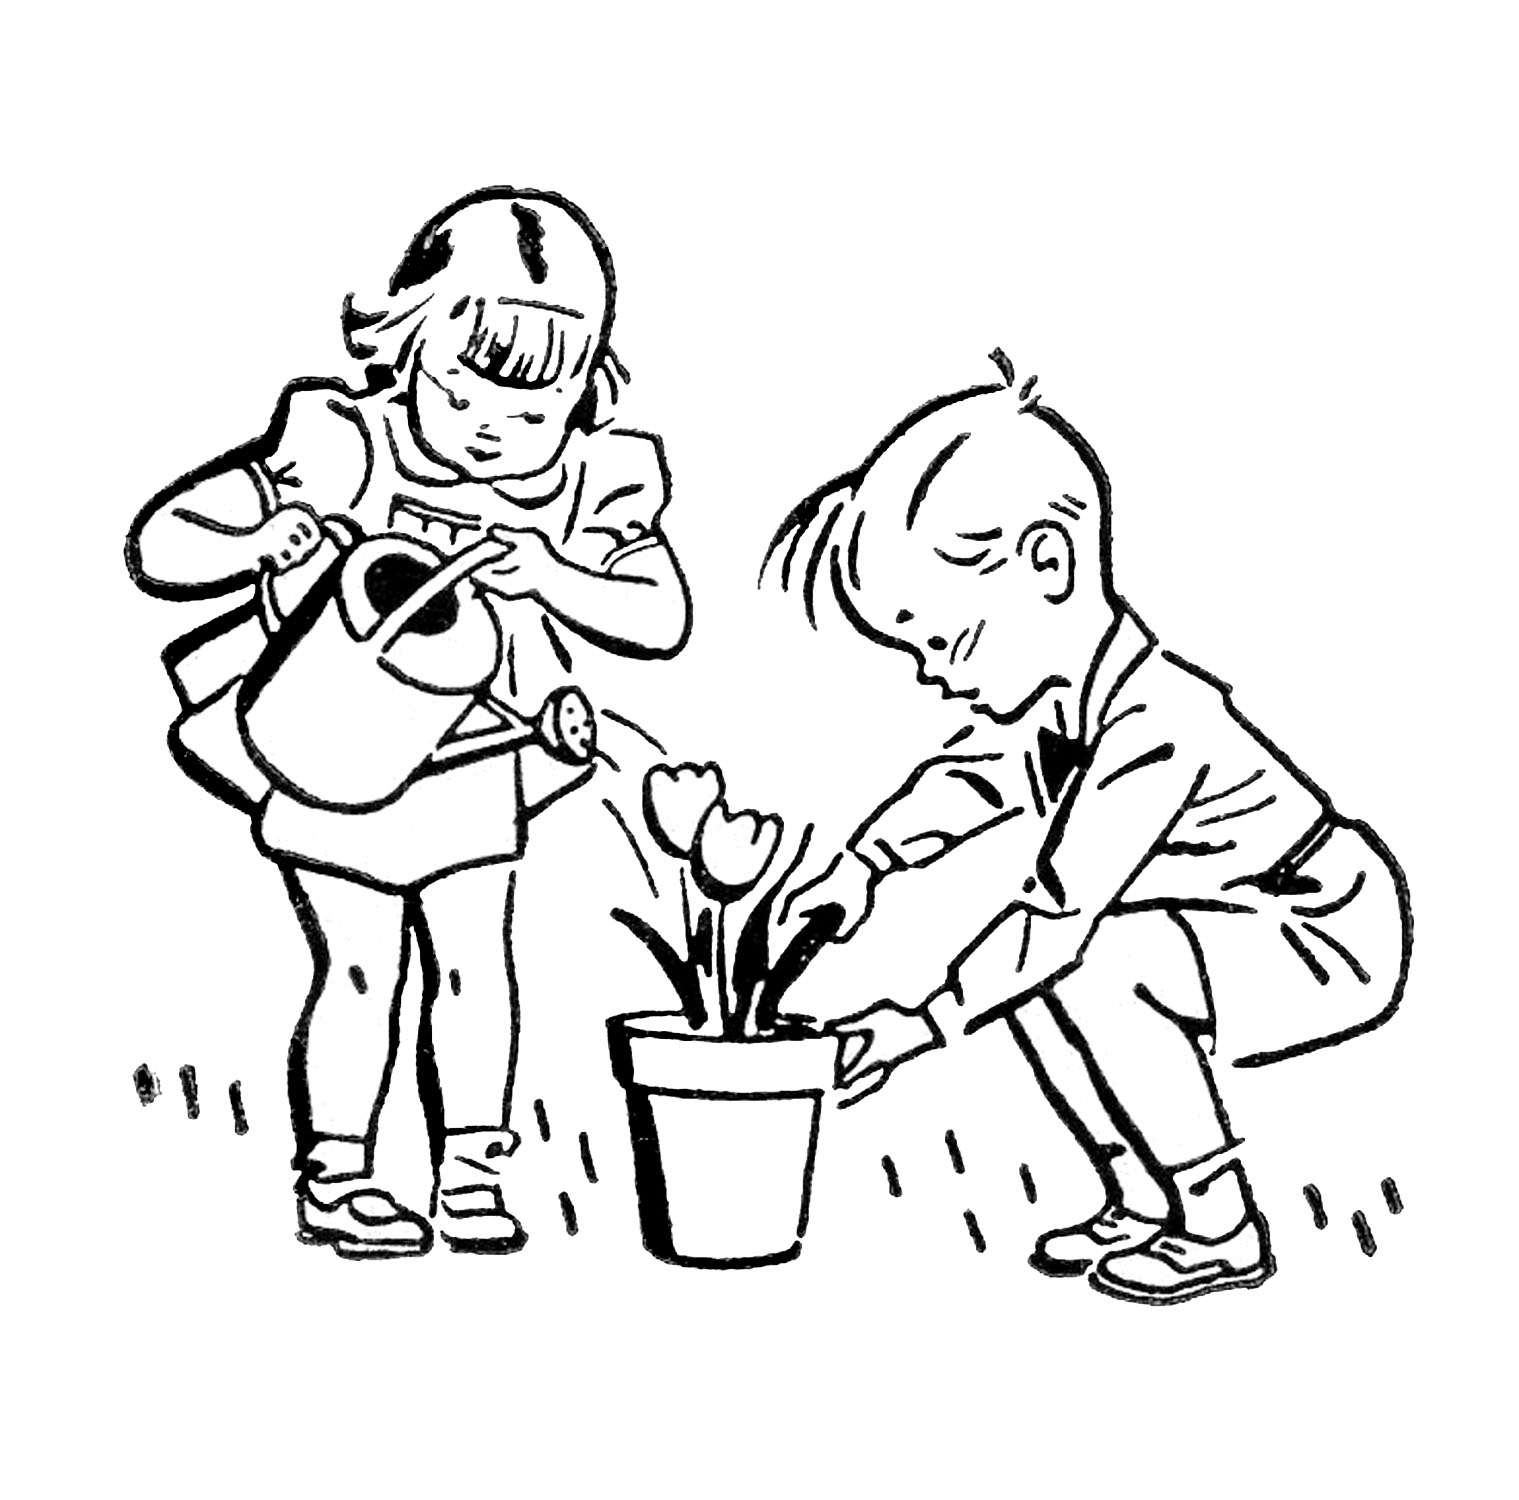 1519x1500 Kids Cleaning Clipart Black And White Station